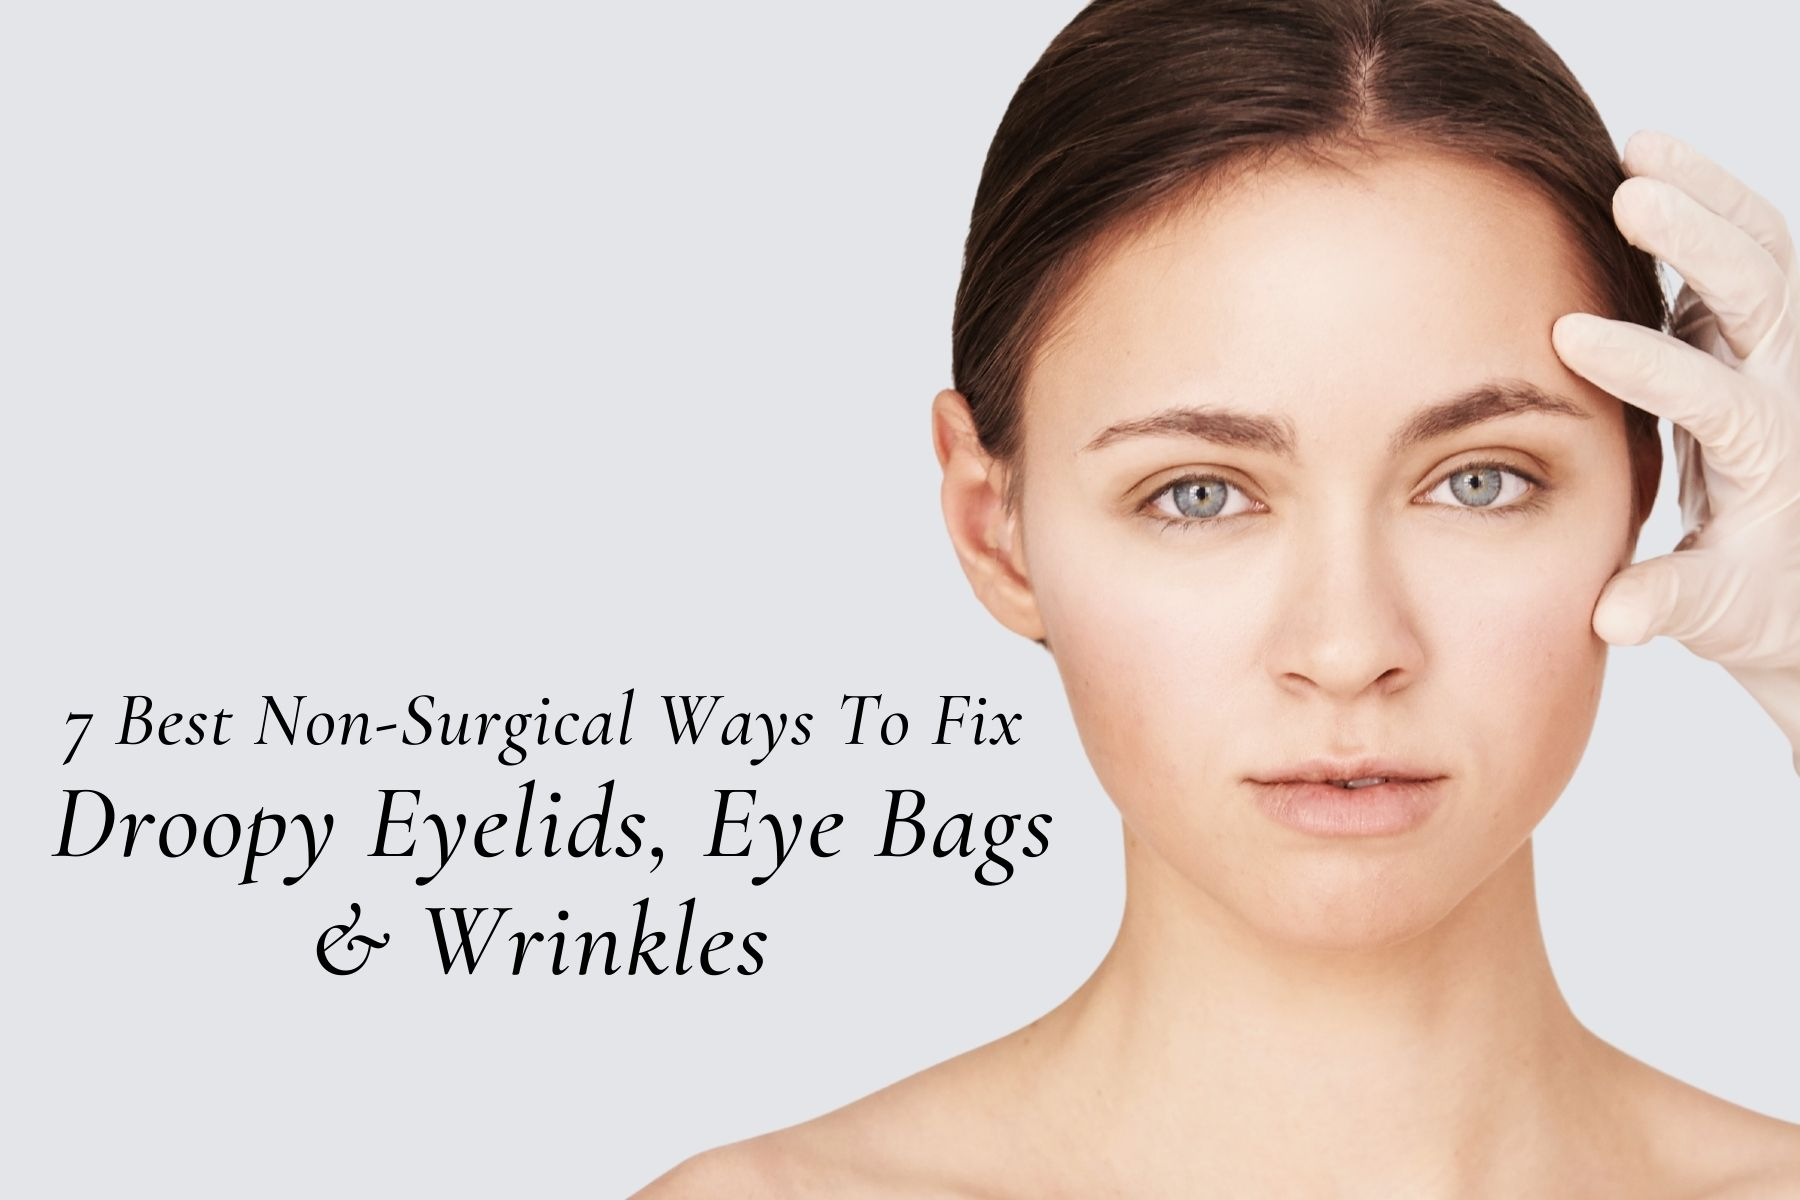 7 Best Non-Surgical Ways To Fix Droopy Eyelids, Eye Bags & Wrinkles